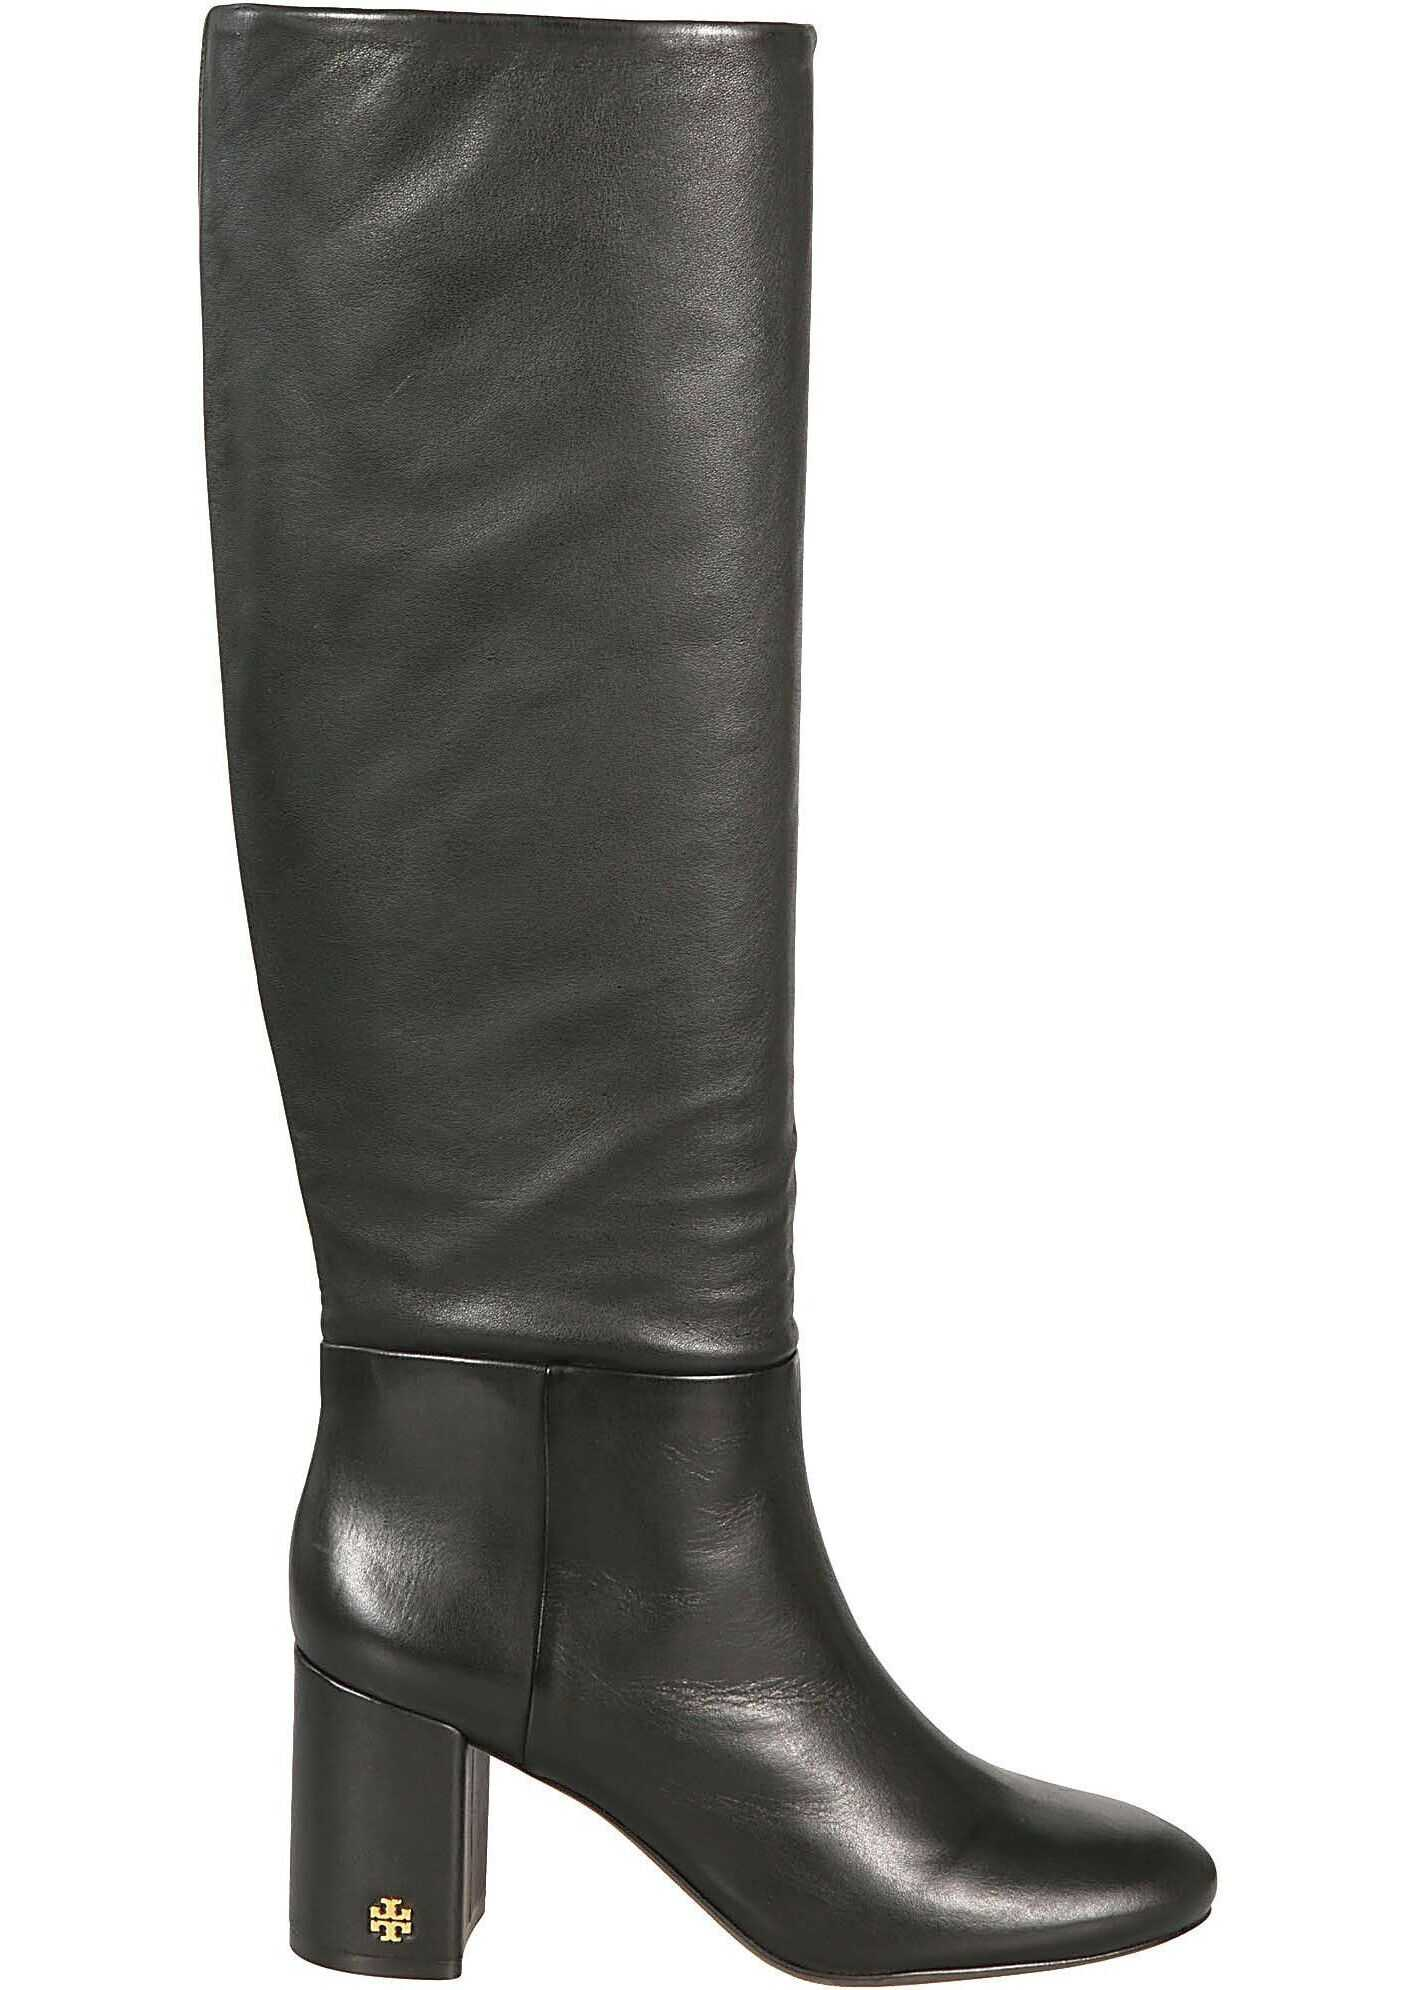 Tory Burch Leather Boots BLACK